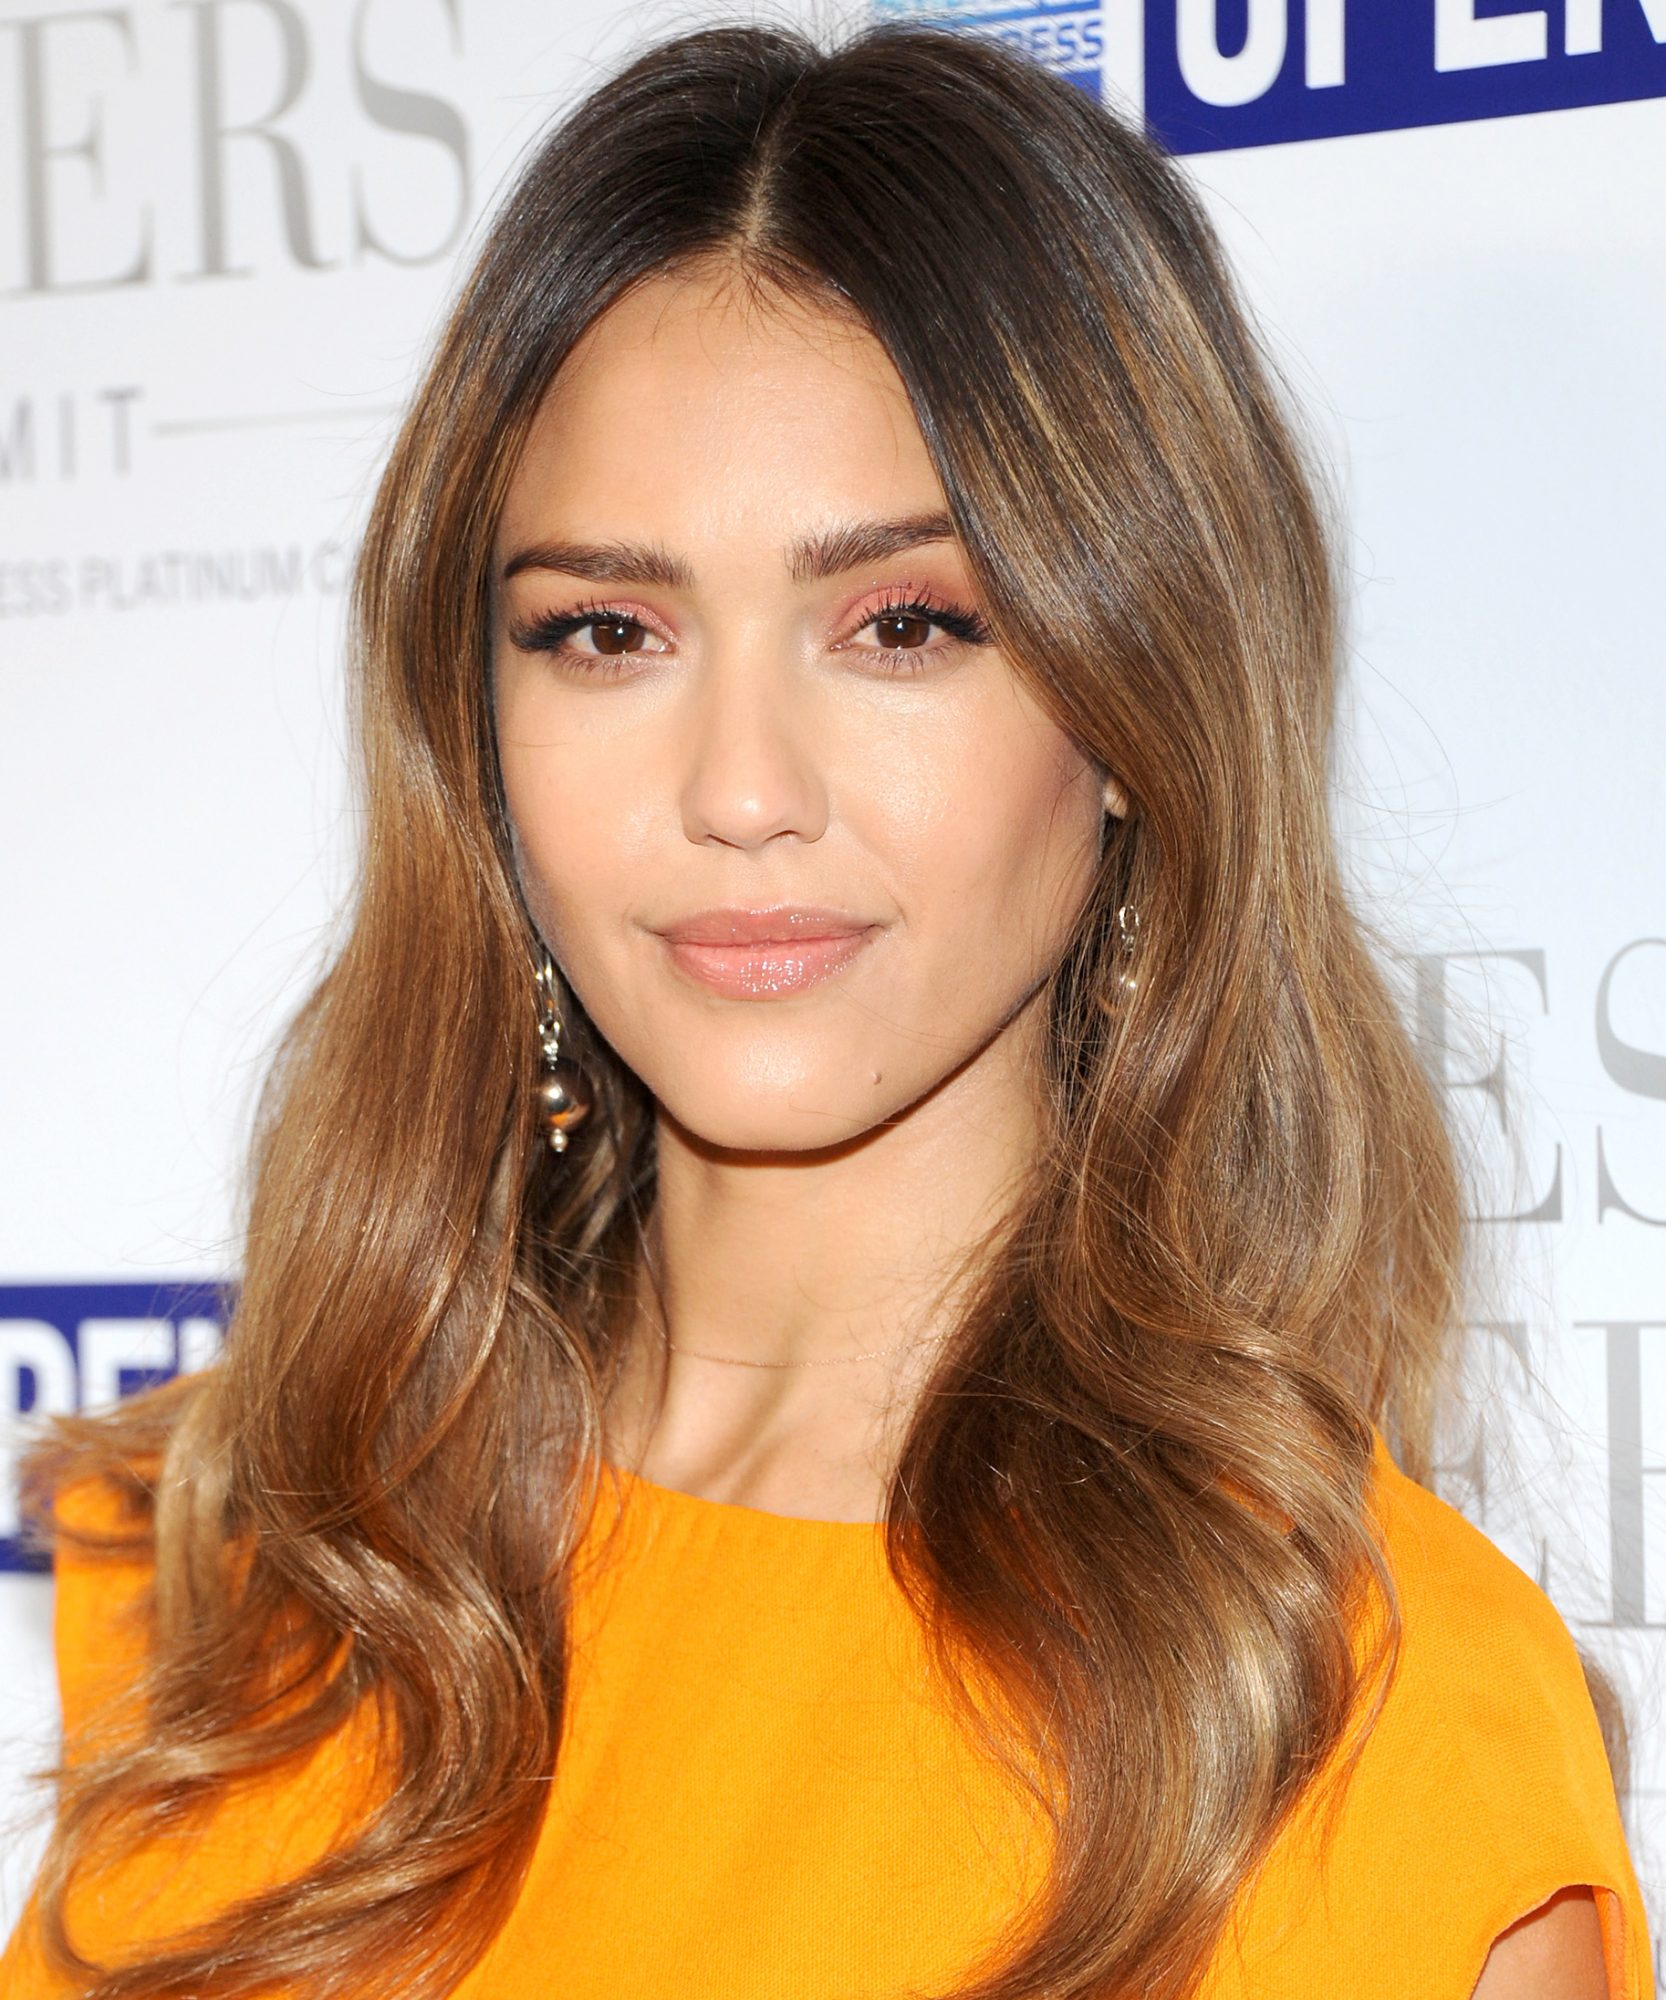 Jessica Alba's Shiny Waves